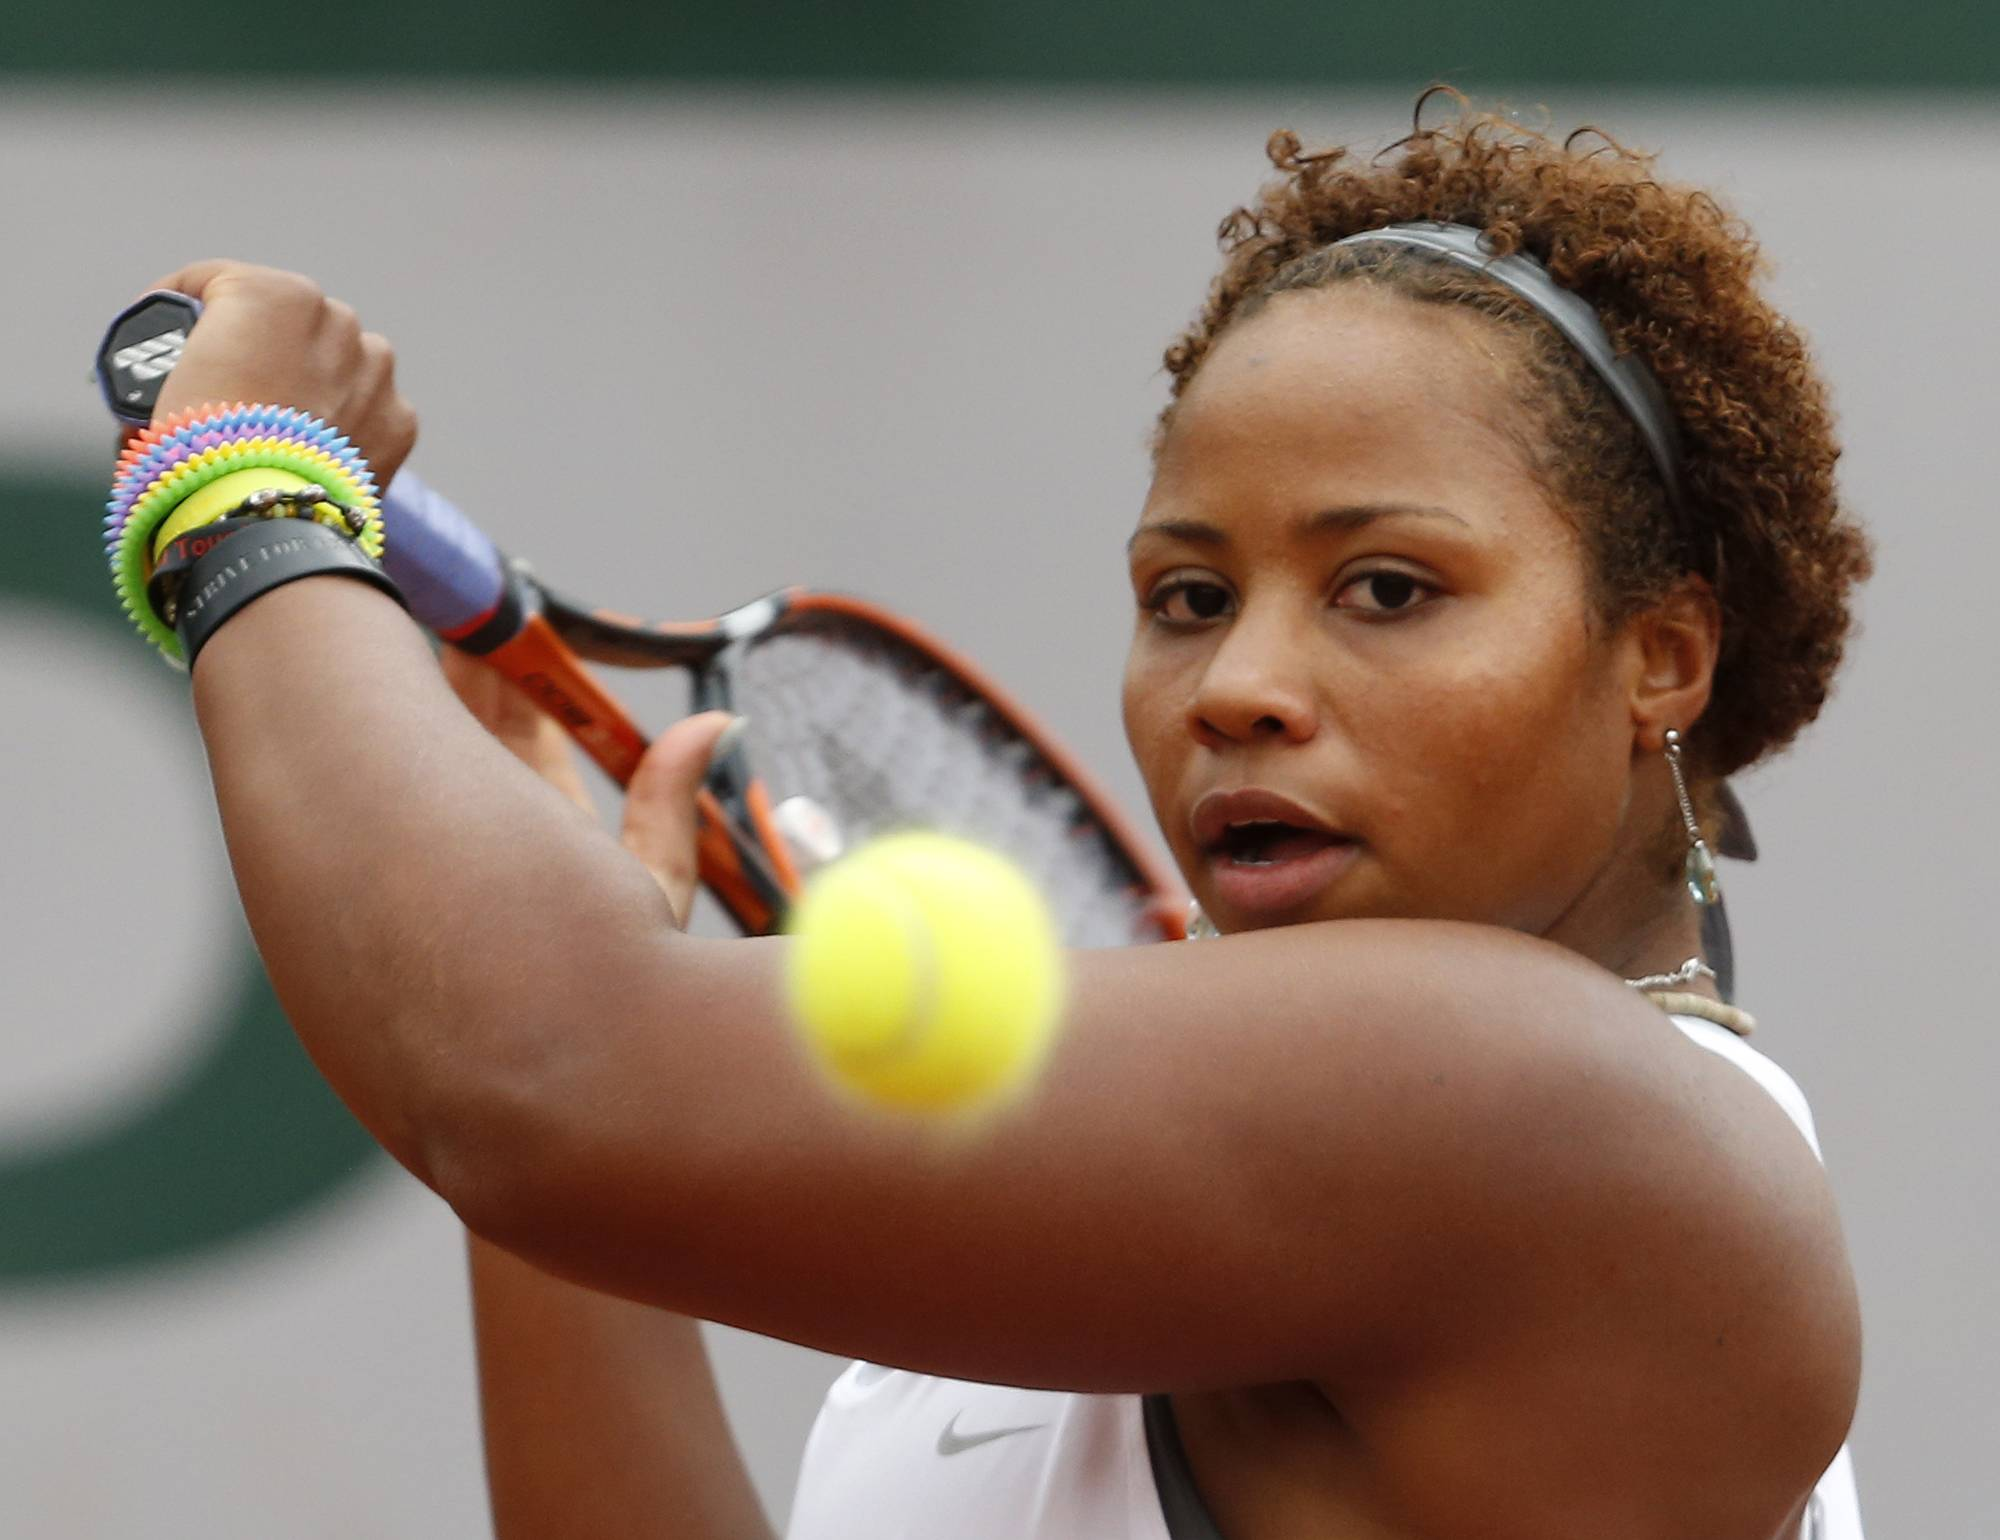 Taylor Townsend, of the U.S, returns the ball to France's Alize Cornet during the second round match of  the French Open tennis tournament at the Roland Garros stadium, in Paris, France, Wednesday, May 28, 2014.